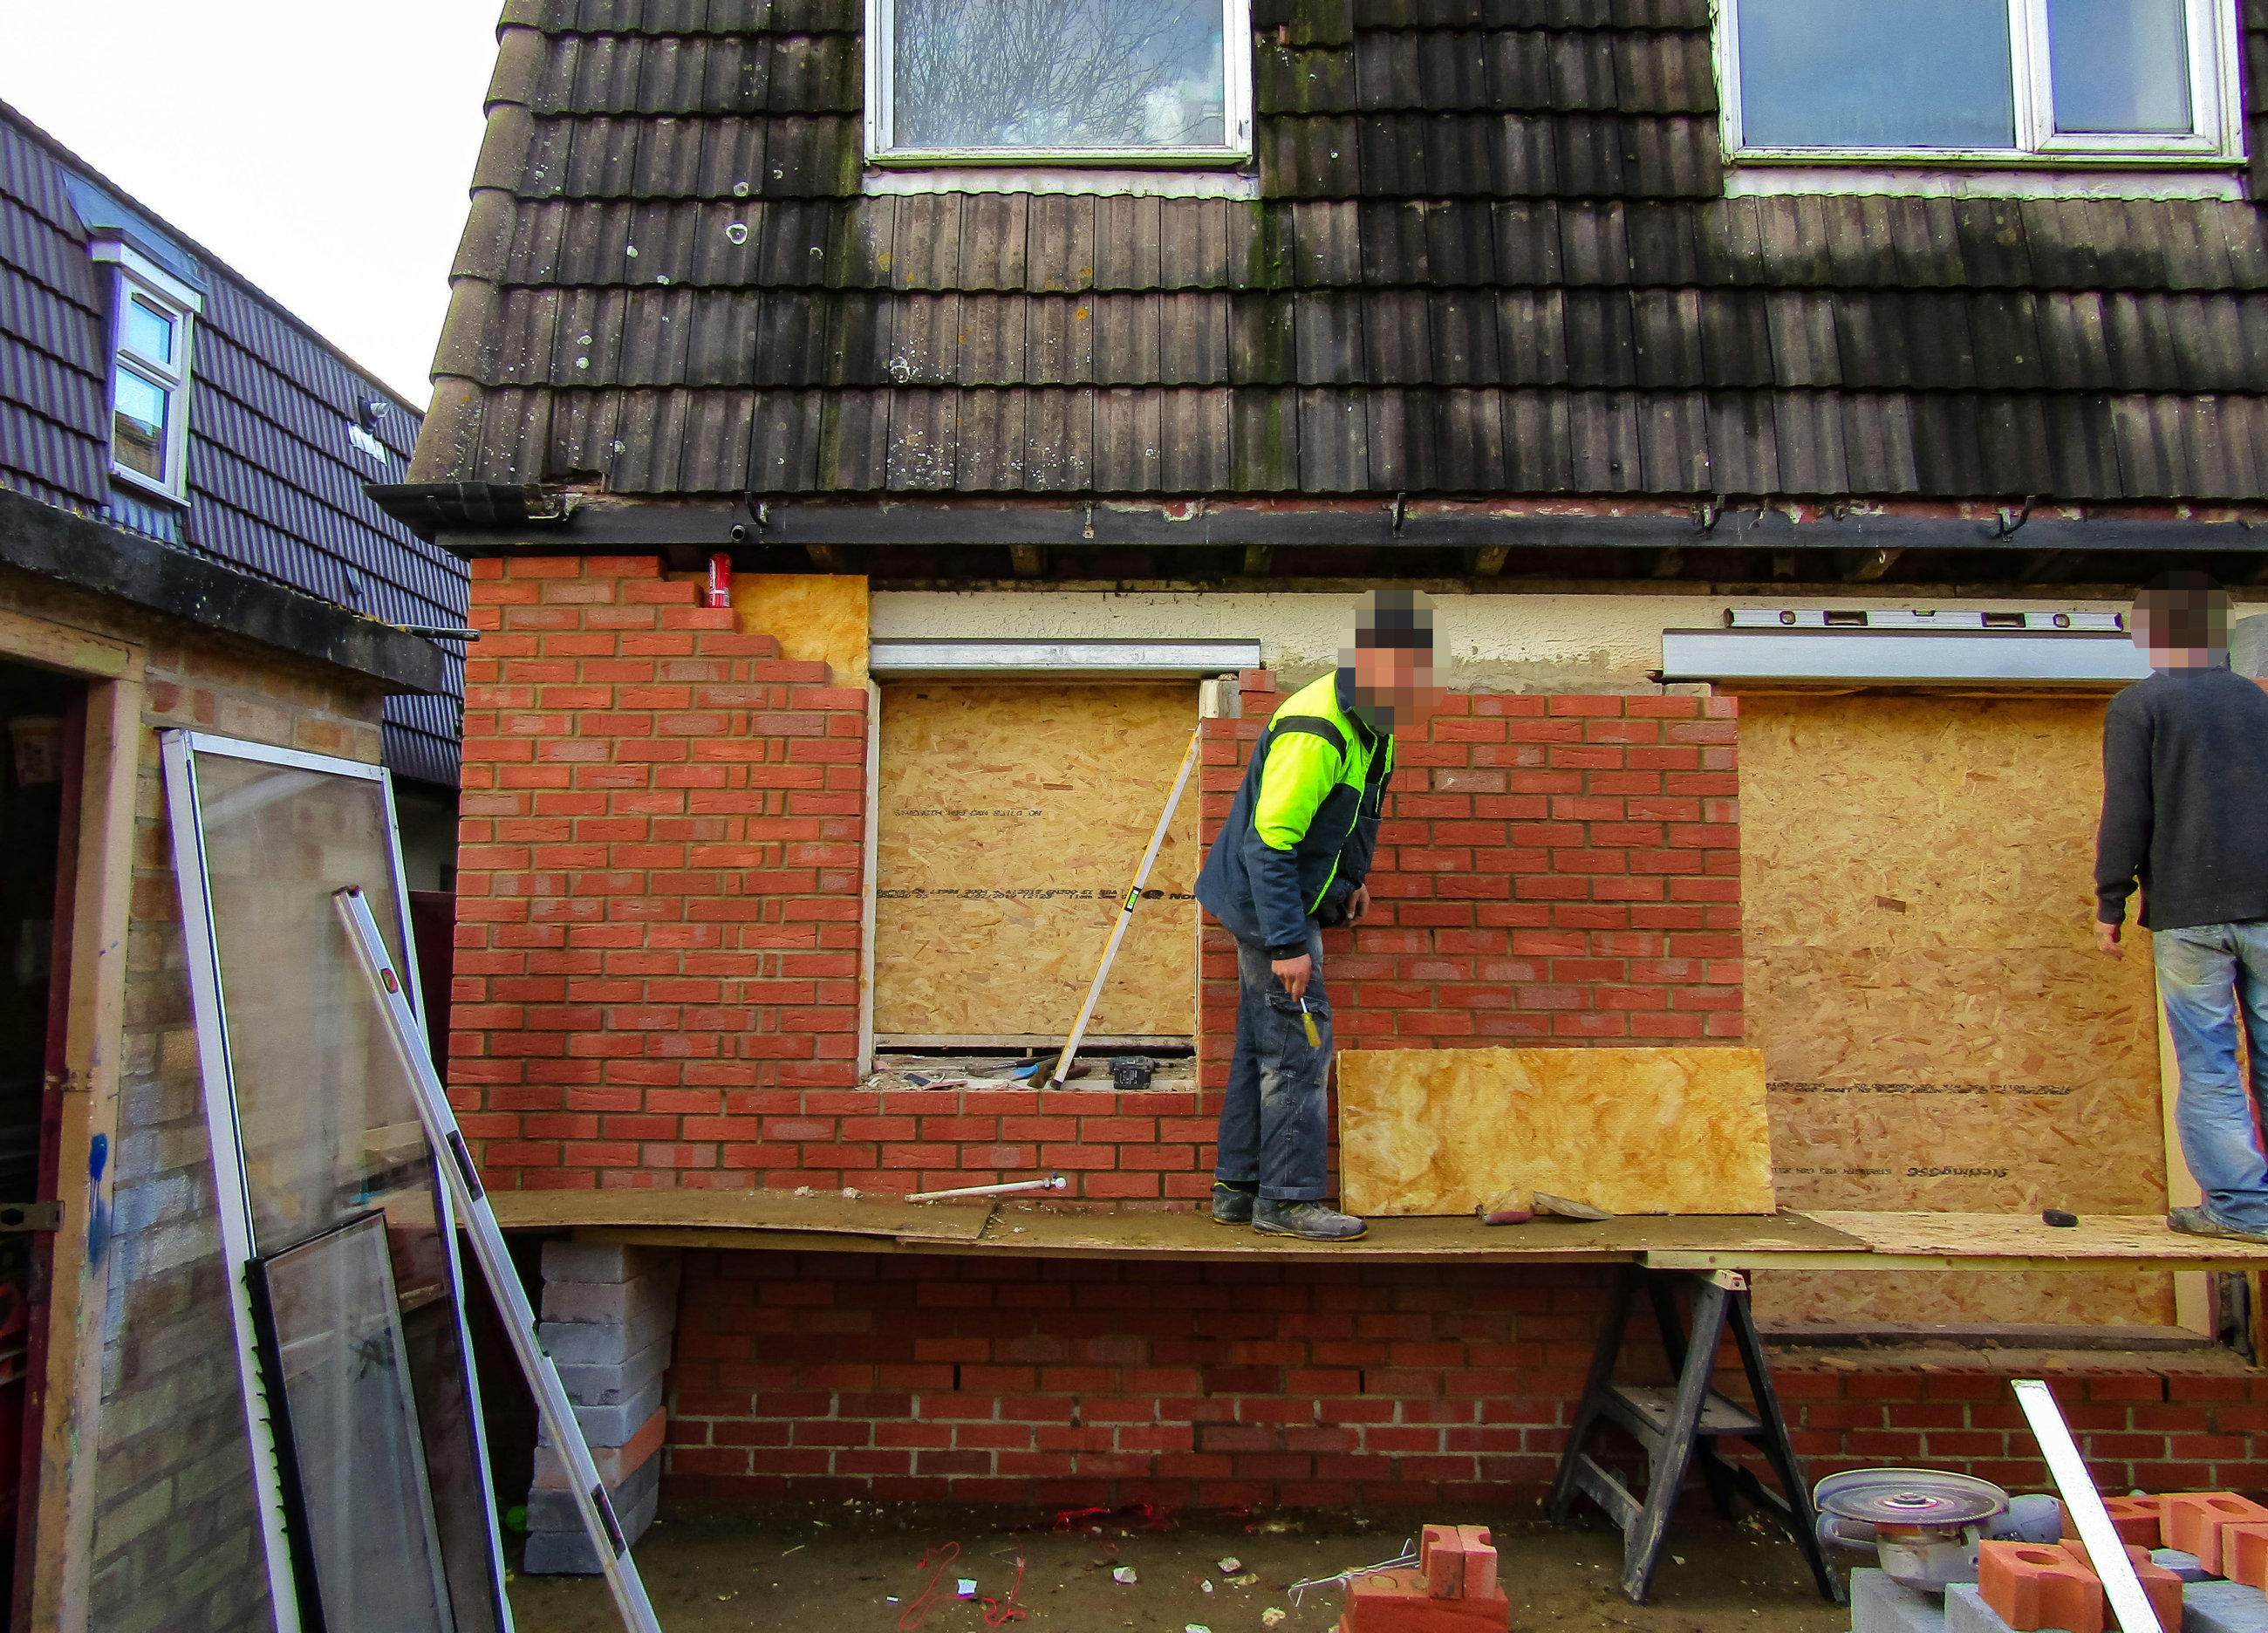 The cost of a roof alone can come up to around £5,000 or £6,000